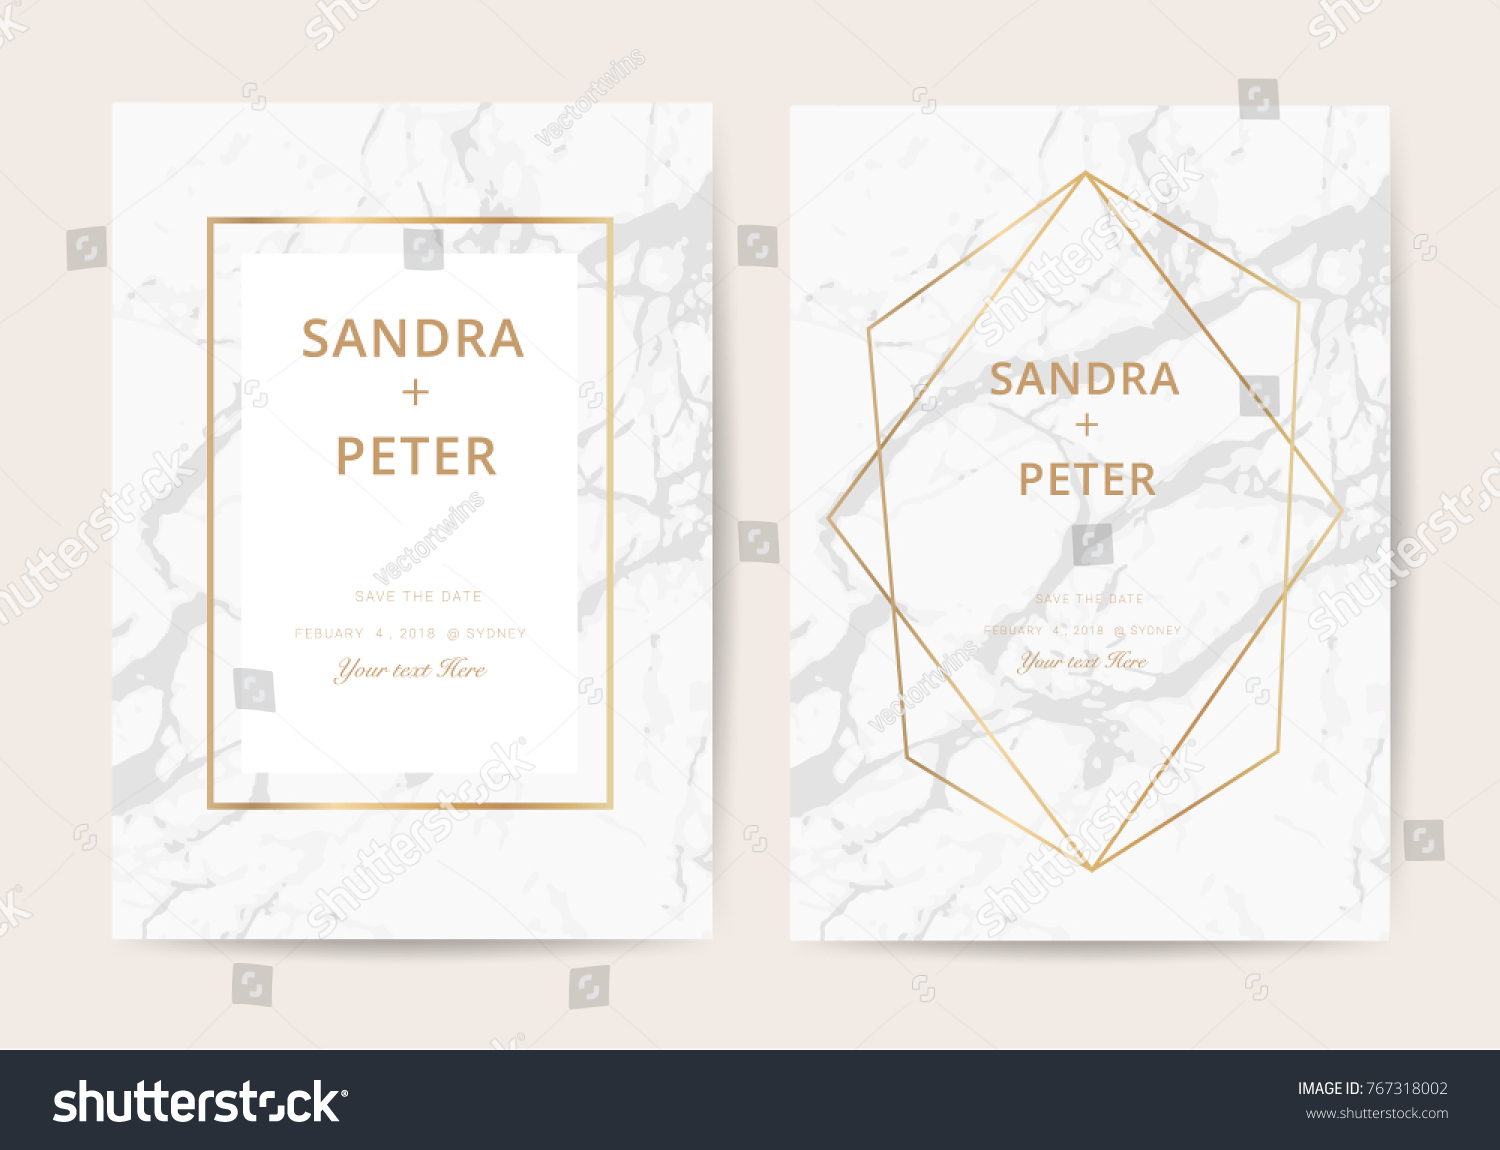 Luxury Business Cards Marble Texture Gold Stock Vector 767318002 ...